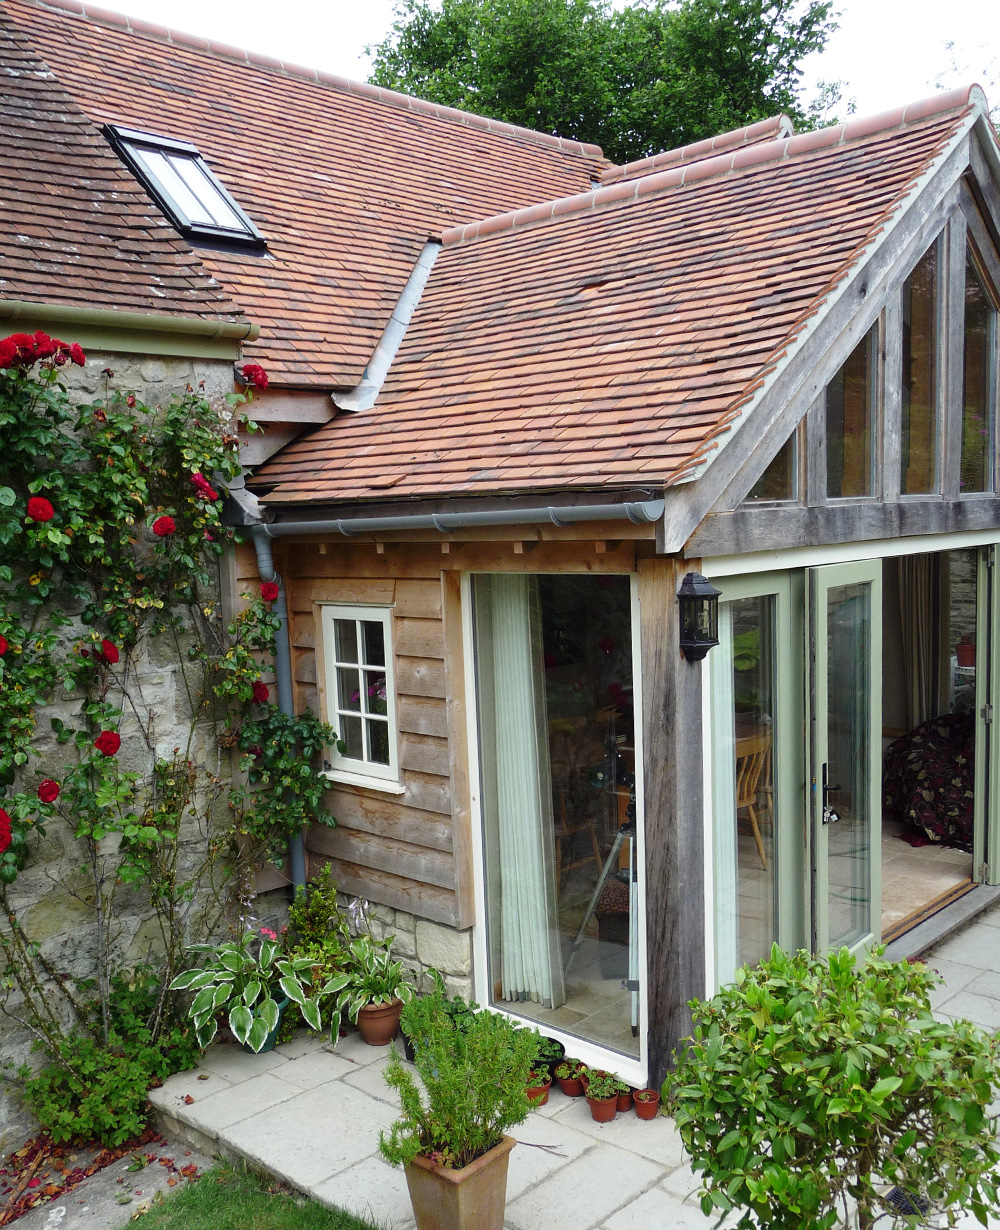 An Oak Frame Home Built For Under 200k: Oak Framed Extension In Dorset